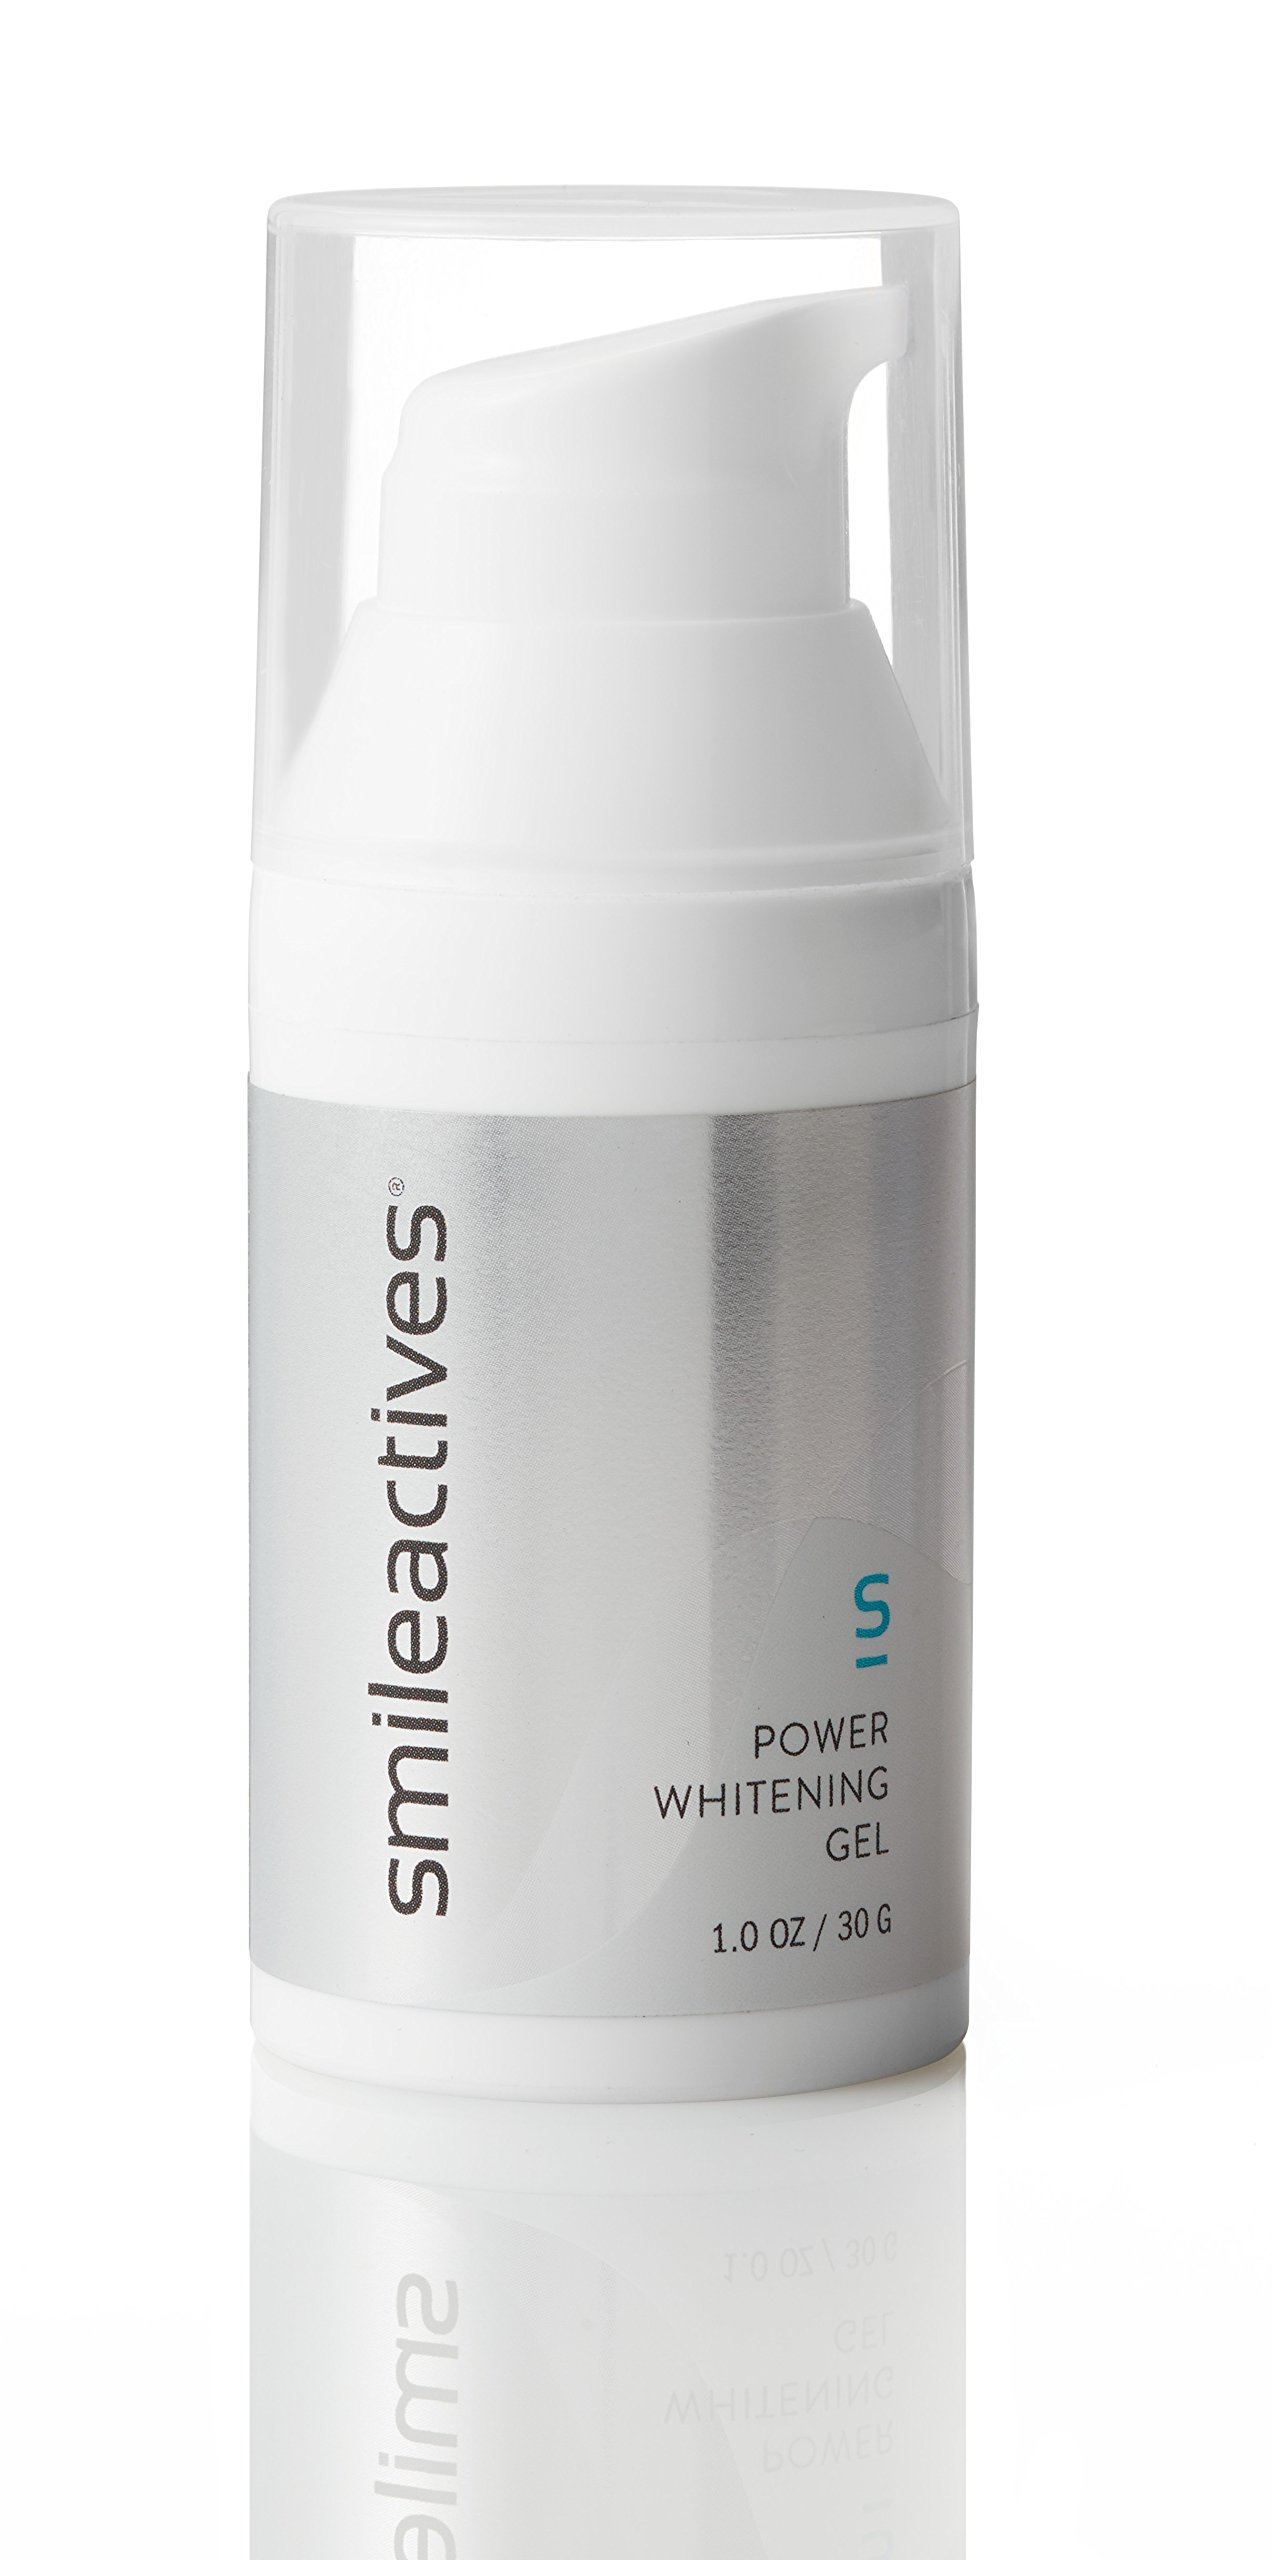 Smileactives – Power Whitening Gel – Teeth Whitening and Brightening with Polyclean Technology – Travel Size 30 Day Supply/1 Ounce